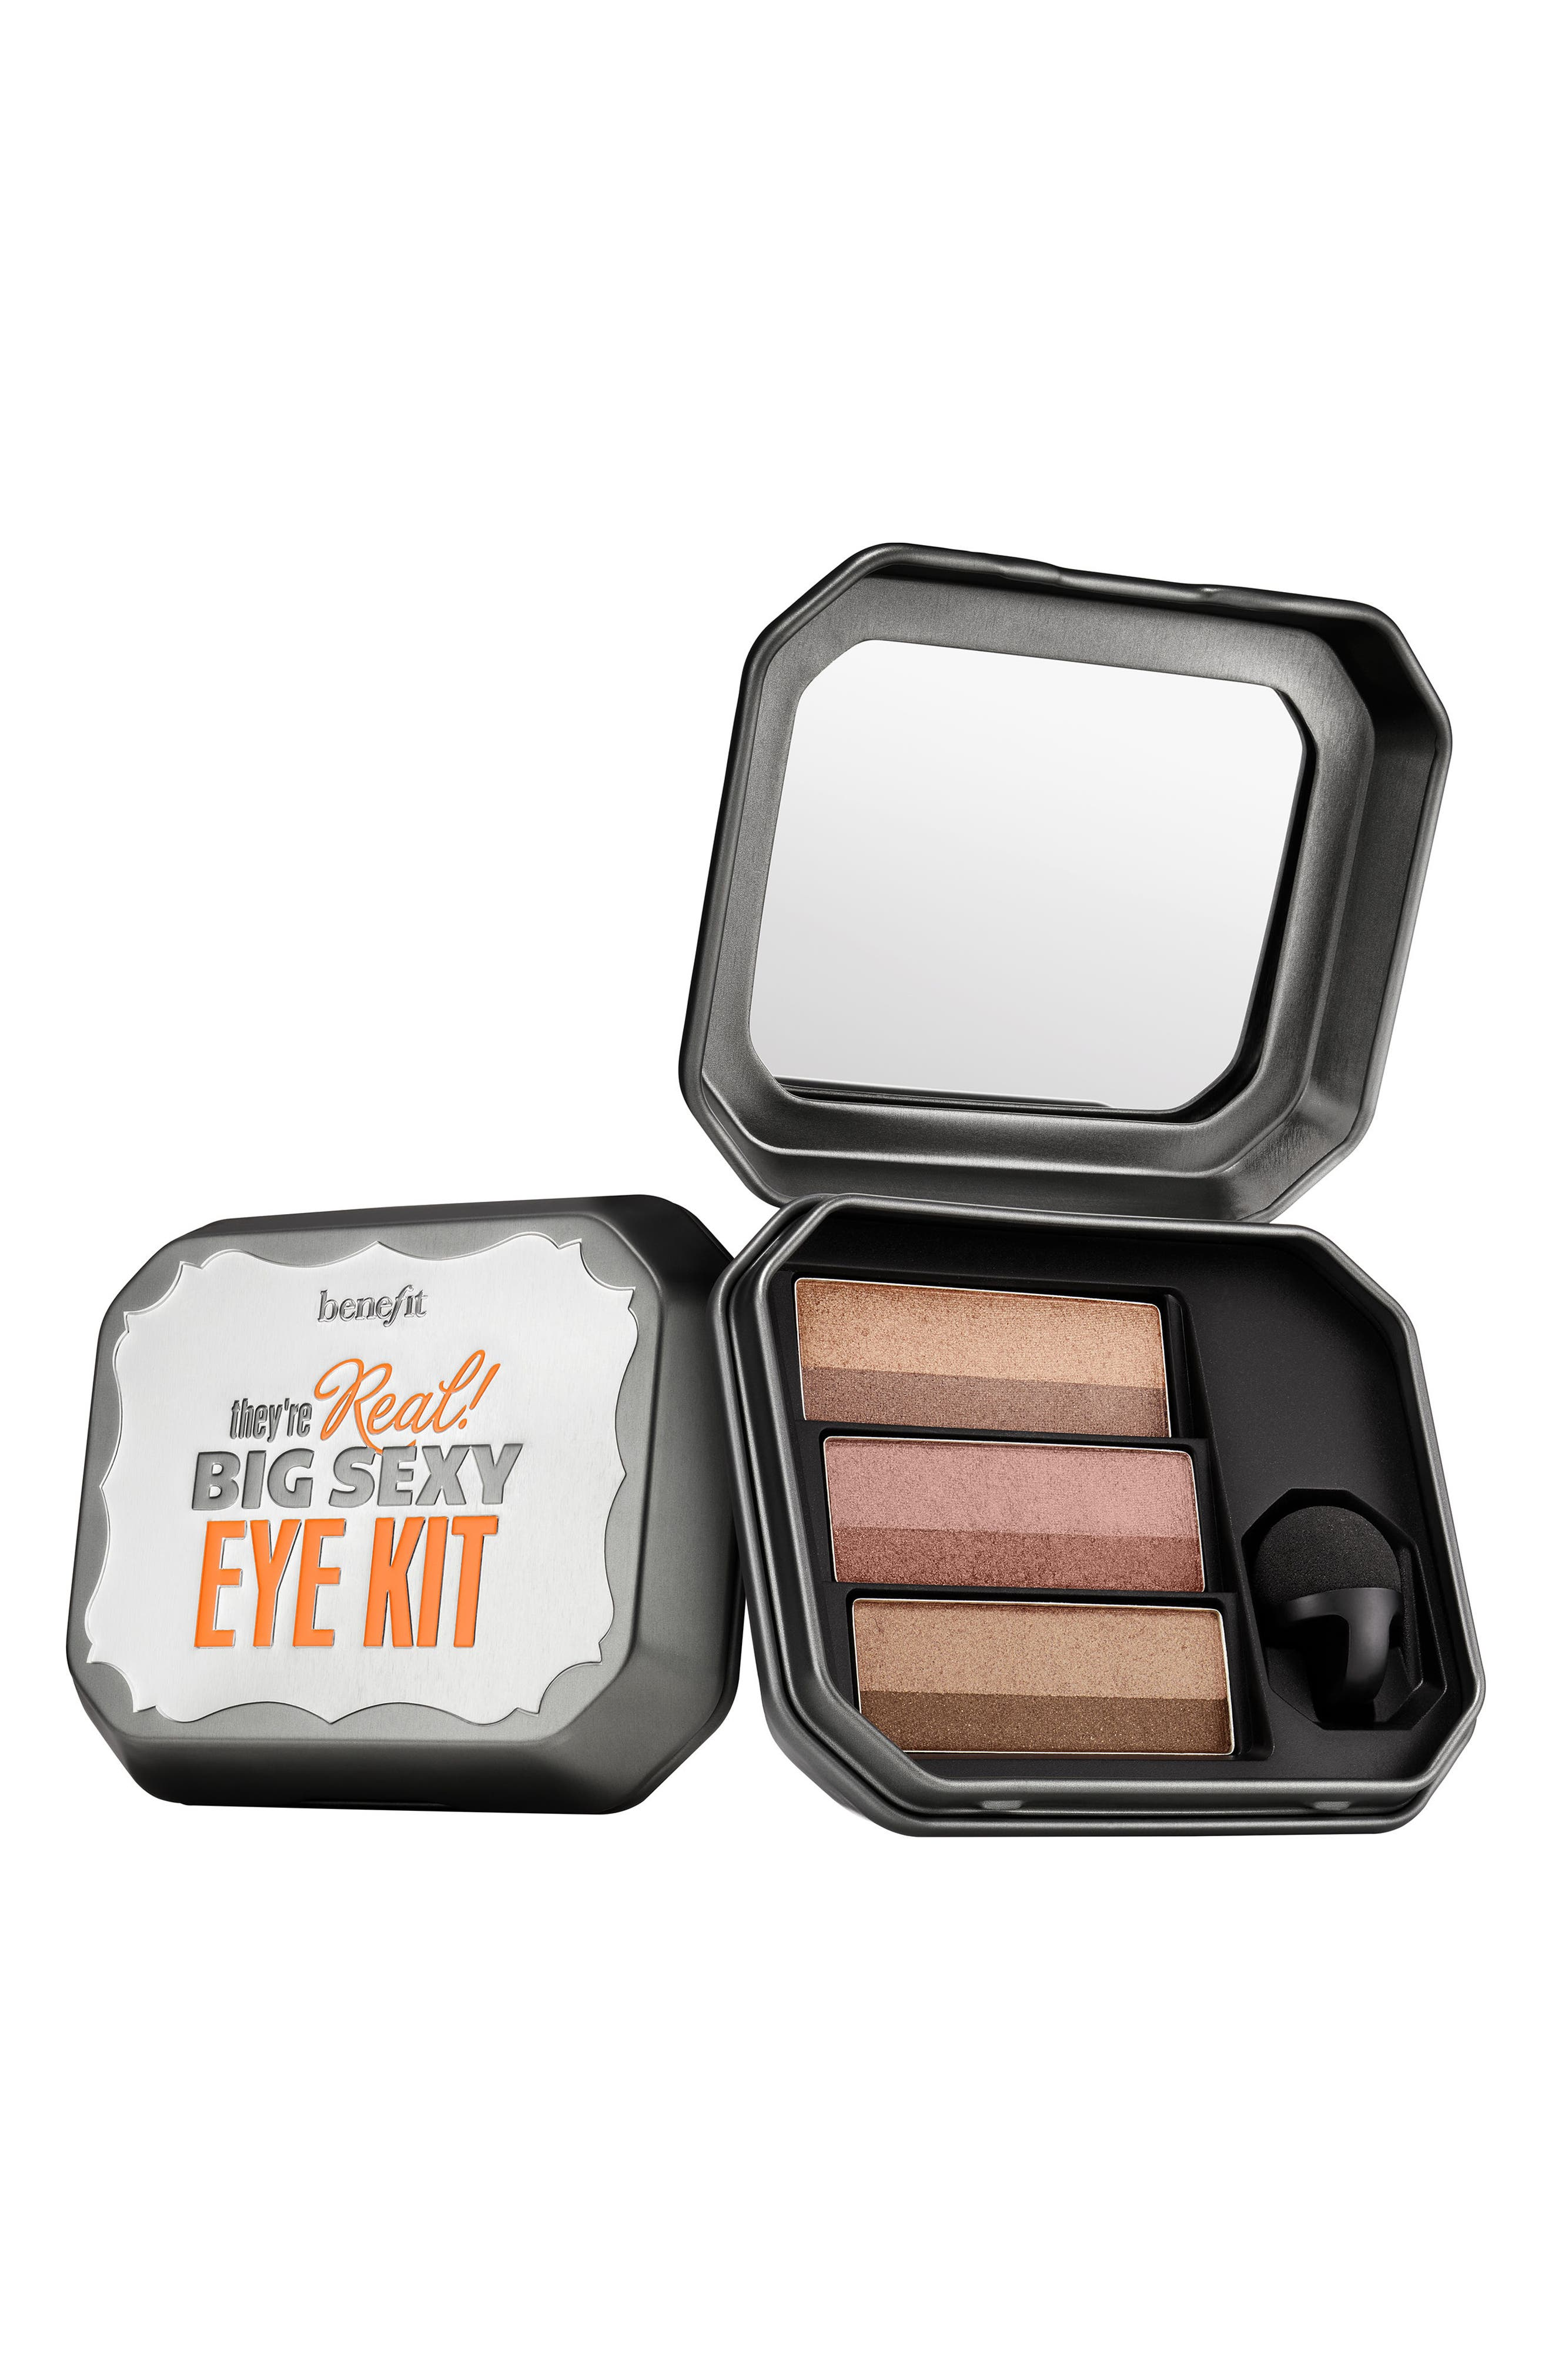 Benefit They're Real! Big Sexy Eye Kit,                         Main,                         color, NO COLOR